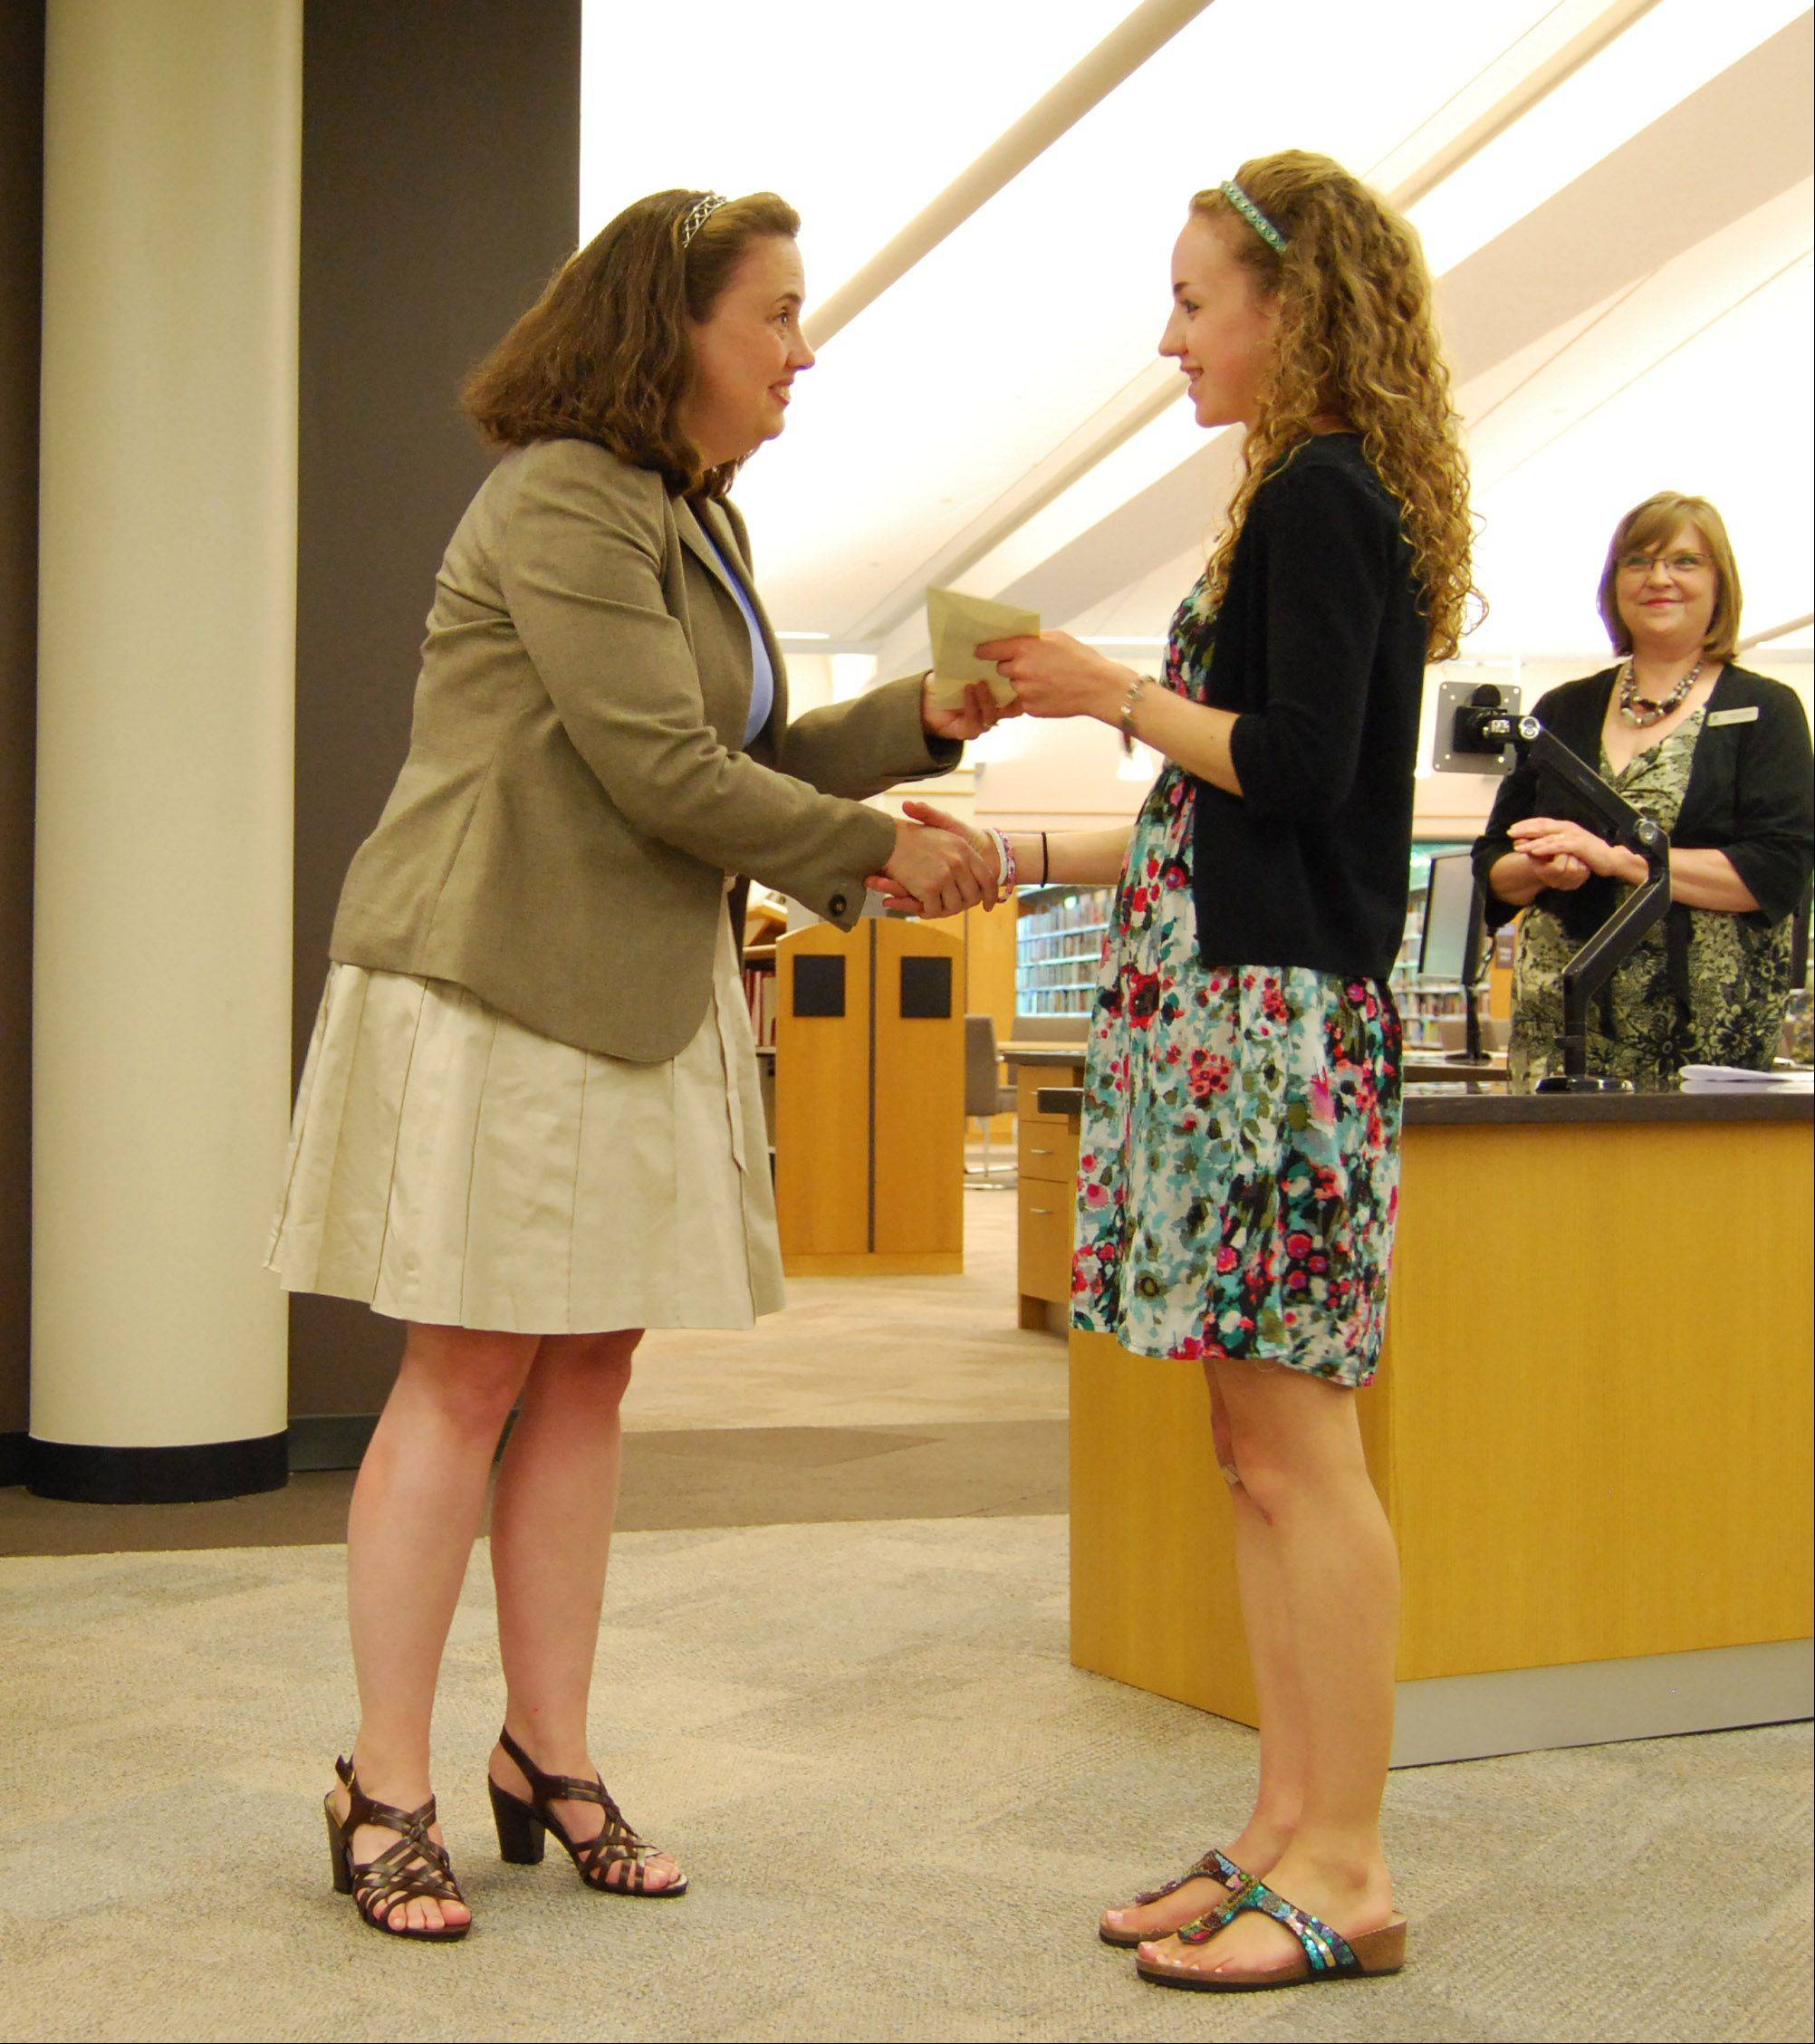 Melissa Engel, a senior at Stevenson High School, receives the 2013 Allen E. Meyer Memorial Scholarship award from Angie Goodrich, president of the Friends of the Vernon Area Library while library director Cynthia Fuerst looks on.